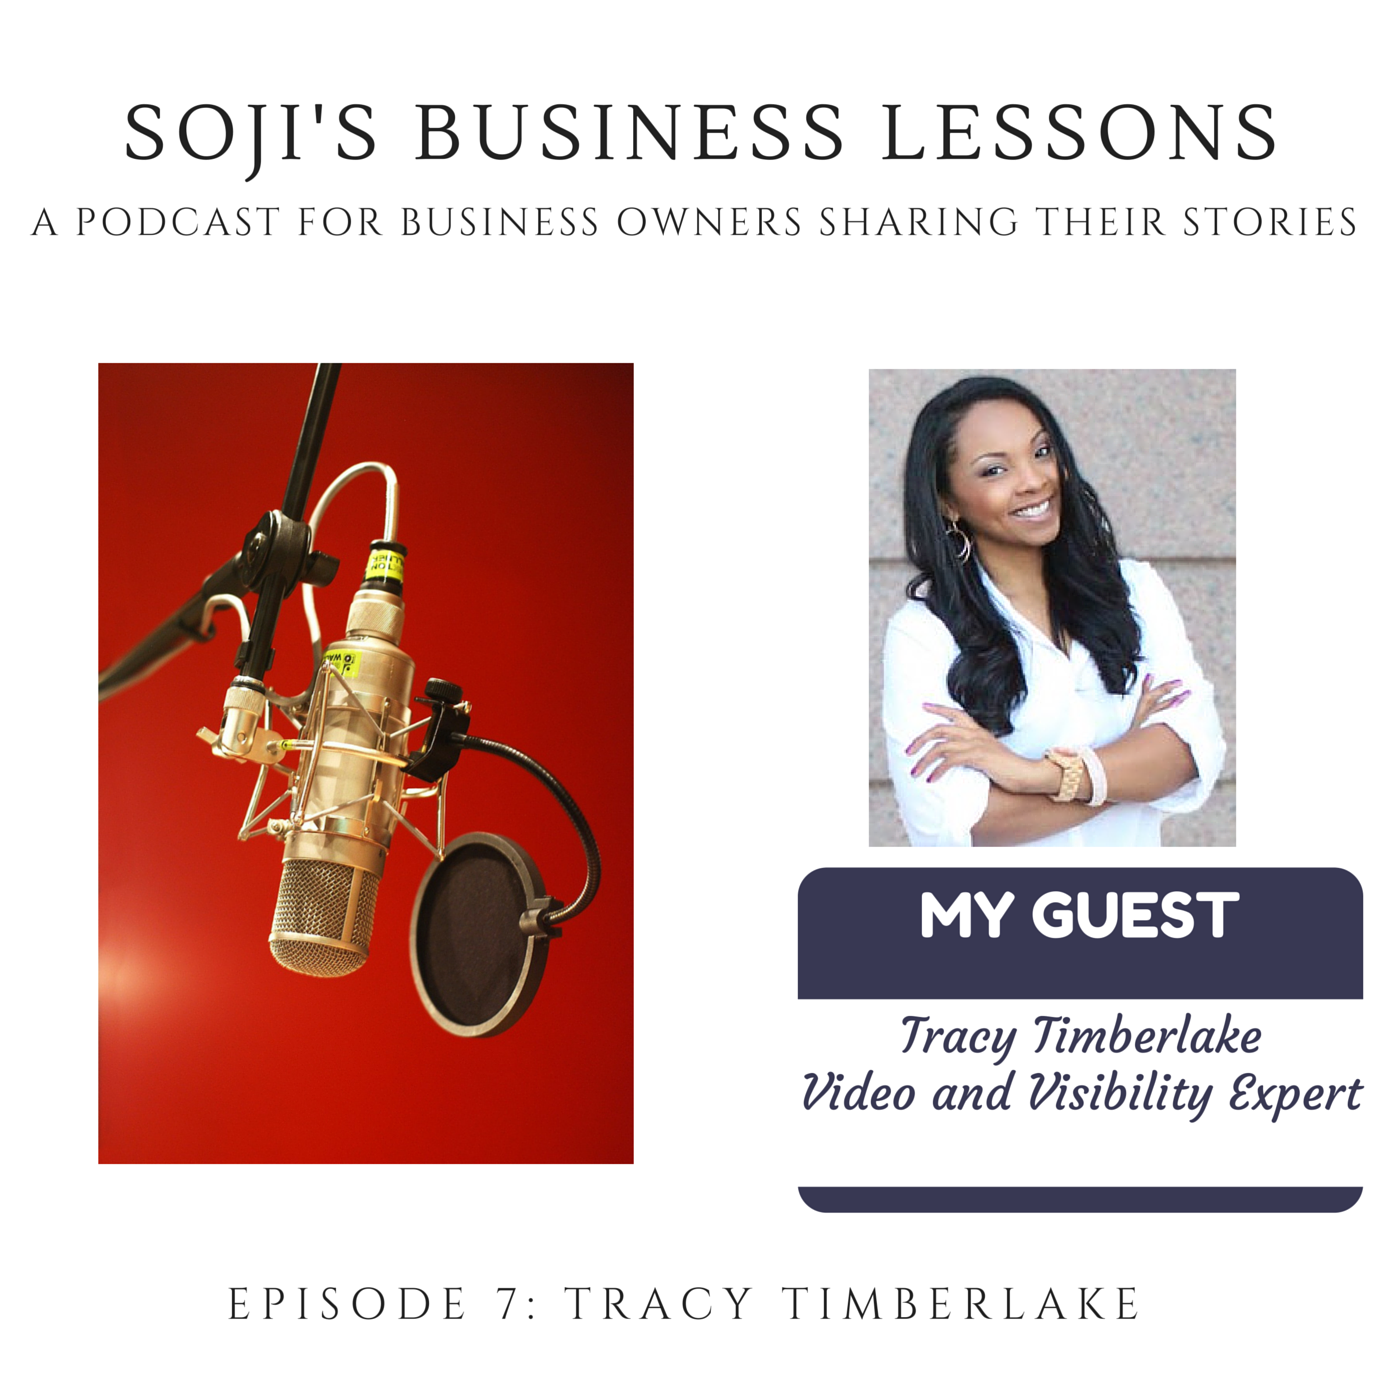 Tracy Timberlake - EPISODE 7 SOJI'S BUSINESS LESSONS